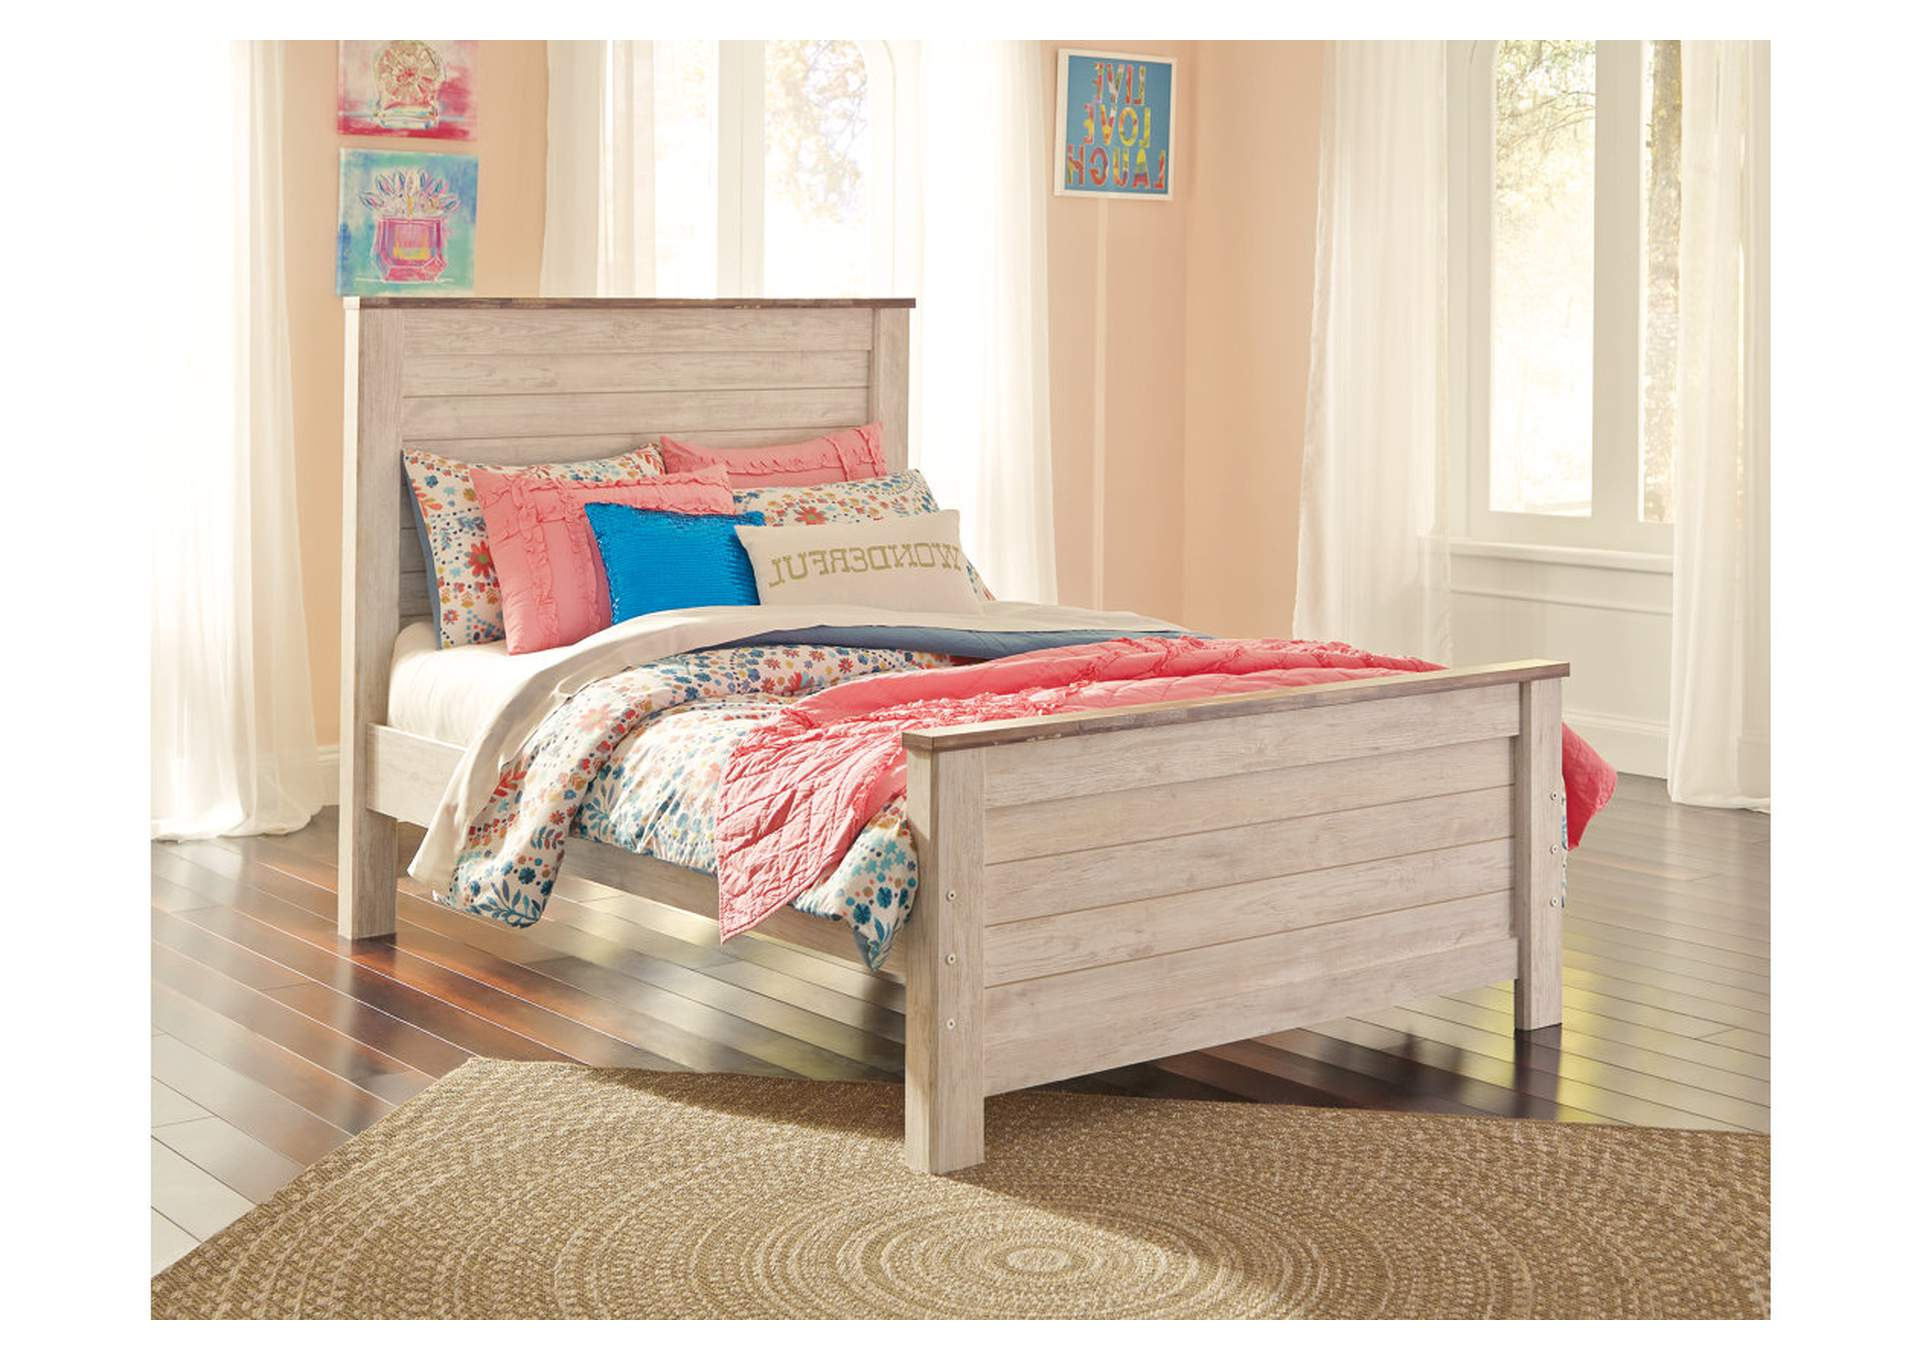 Willowton Whitewash Full Panel Bed,48 Hour Quick Ship